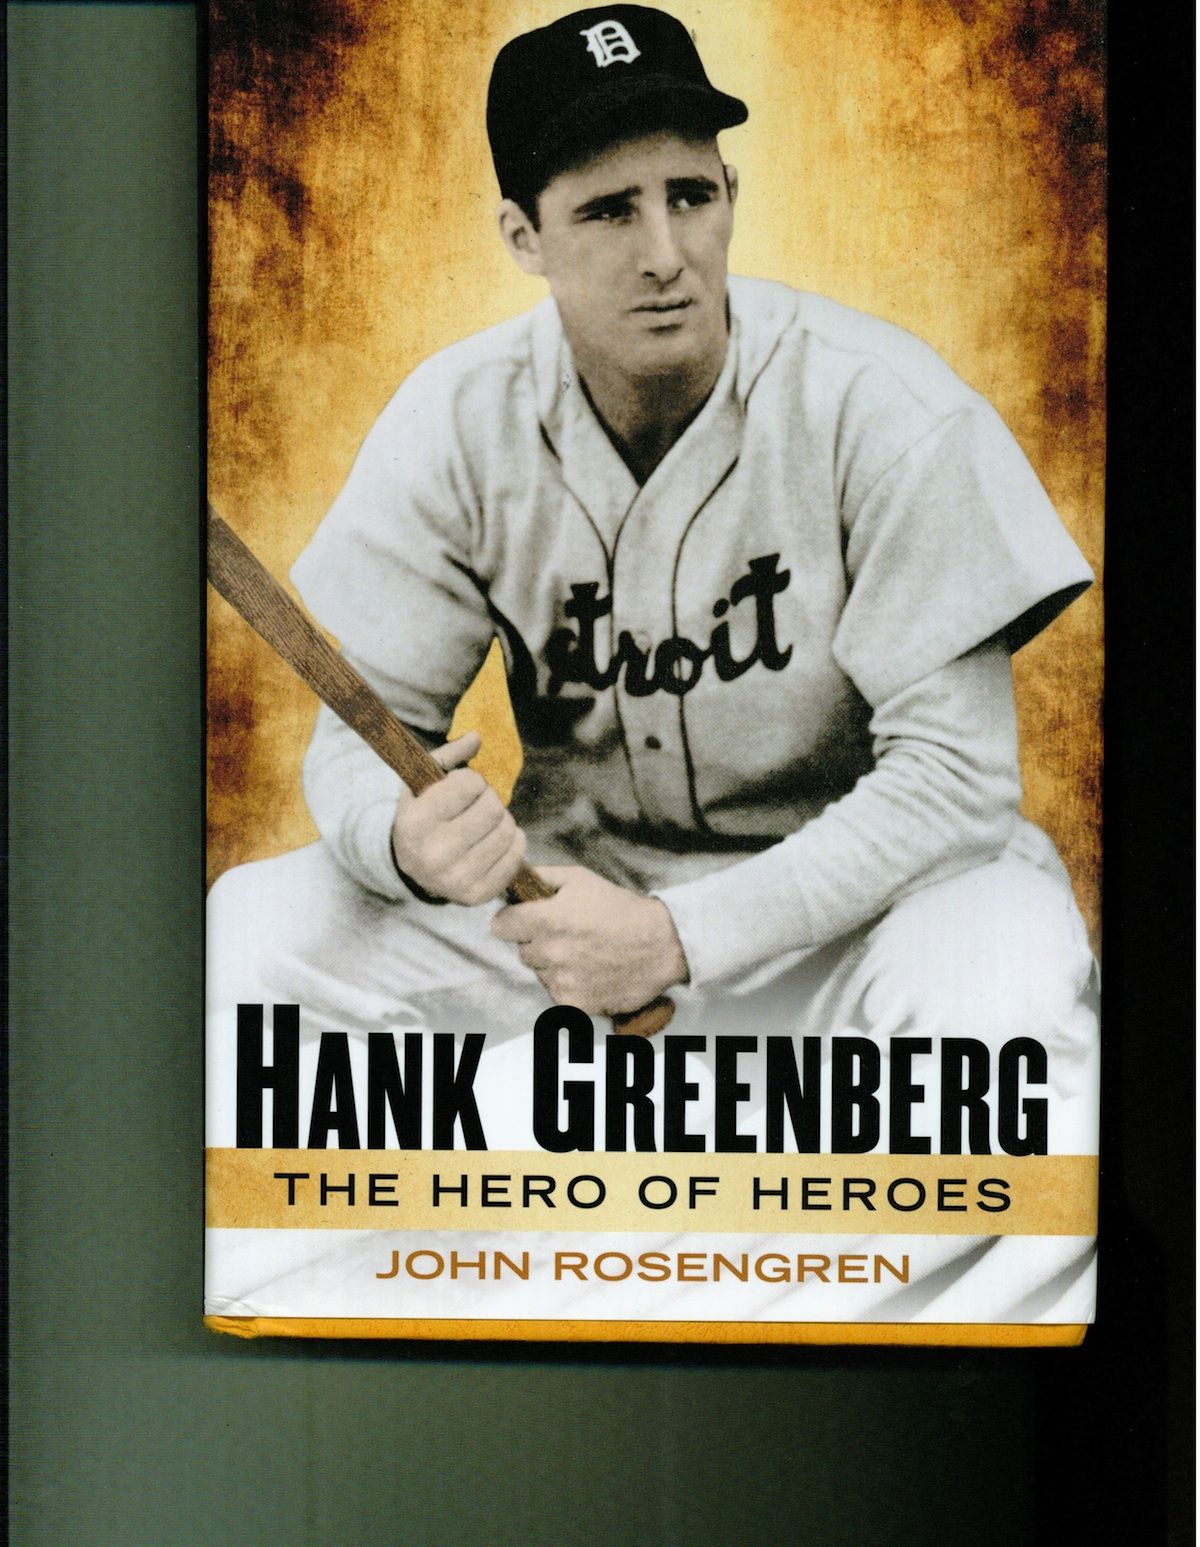 "Click photo to download. The cover of  Hank Greenberg: The Hero of Heroes.  Credit: Penguin Group.                 0     0     1     5     31     JNS     1     1     35     14.0                            Normal     0                     false     false     false         EN-US     JA     X-NONE                                                                                                                                                                                                                                                                                                                                                                                                                                                                                                                                                                                                                                                                                                                    /* Style Definitions */ table.MsoNormalTable 	{mso-style-name:""Table Normal""; 	mso-tstyle-rowband-size:0; 	mso-tstyle-colband-size:0; 	mso-style-noshow:yes; 	mso-style-priority:99; 	mso-style-parent:""""; 	mso-padding-alt:0in 5.4pt 0in 5.4pt; 	mso-para-margin:0in; 	mso-para-margin-bottom:.0001pt; 	mso-pagination:widow-orphan; 	font-size:12.0pt; 	font-family:Cambria; 	mso-ascii-font-family:Cambria; 	mso-ascii-theme-font:minor-latin; 	mso-hansi-font-family:Cambria; 	mso-hansi-theme-font:minor-latin;}"